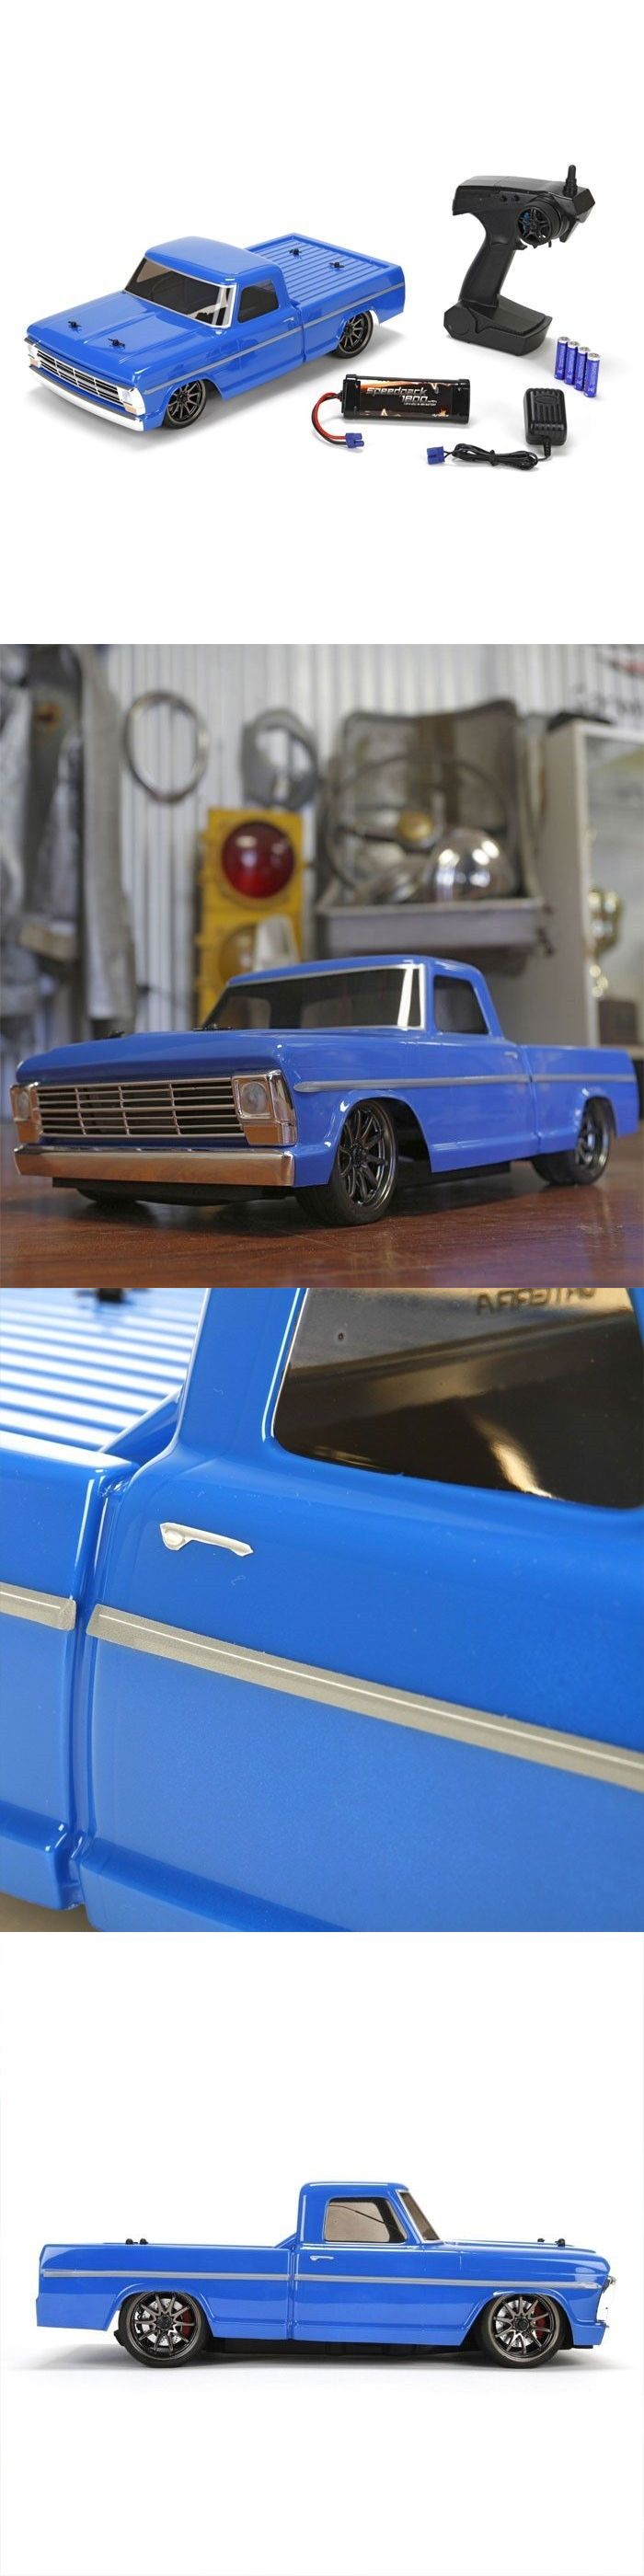 Cars Trucks and Motorcycles 182183: New Vaterra 1968 Ford F-100 1 10 Rc Pickup Truck Rtr Combo - Free Shipping -> BUY IT NOW ONLY: $249.99 on eBay!